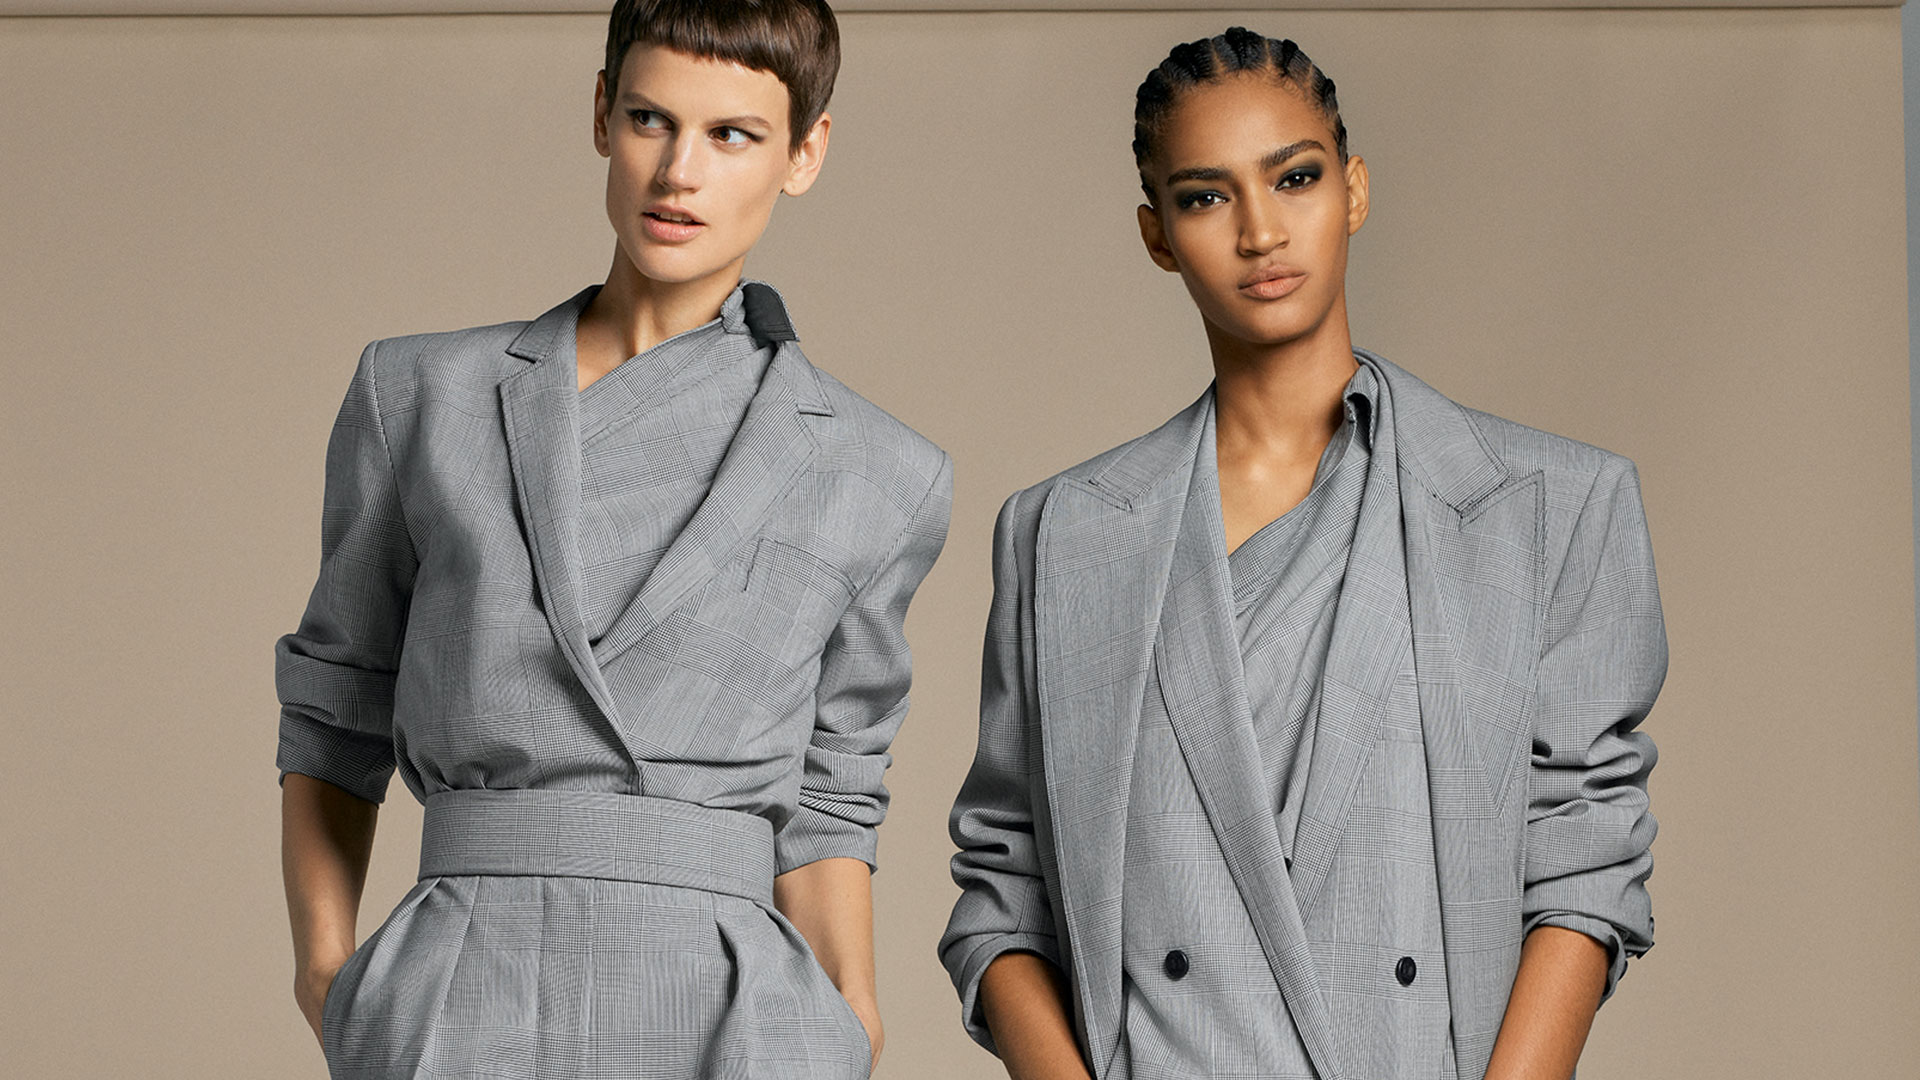 Tailored A 1920x1080 Max Mara